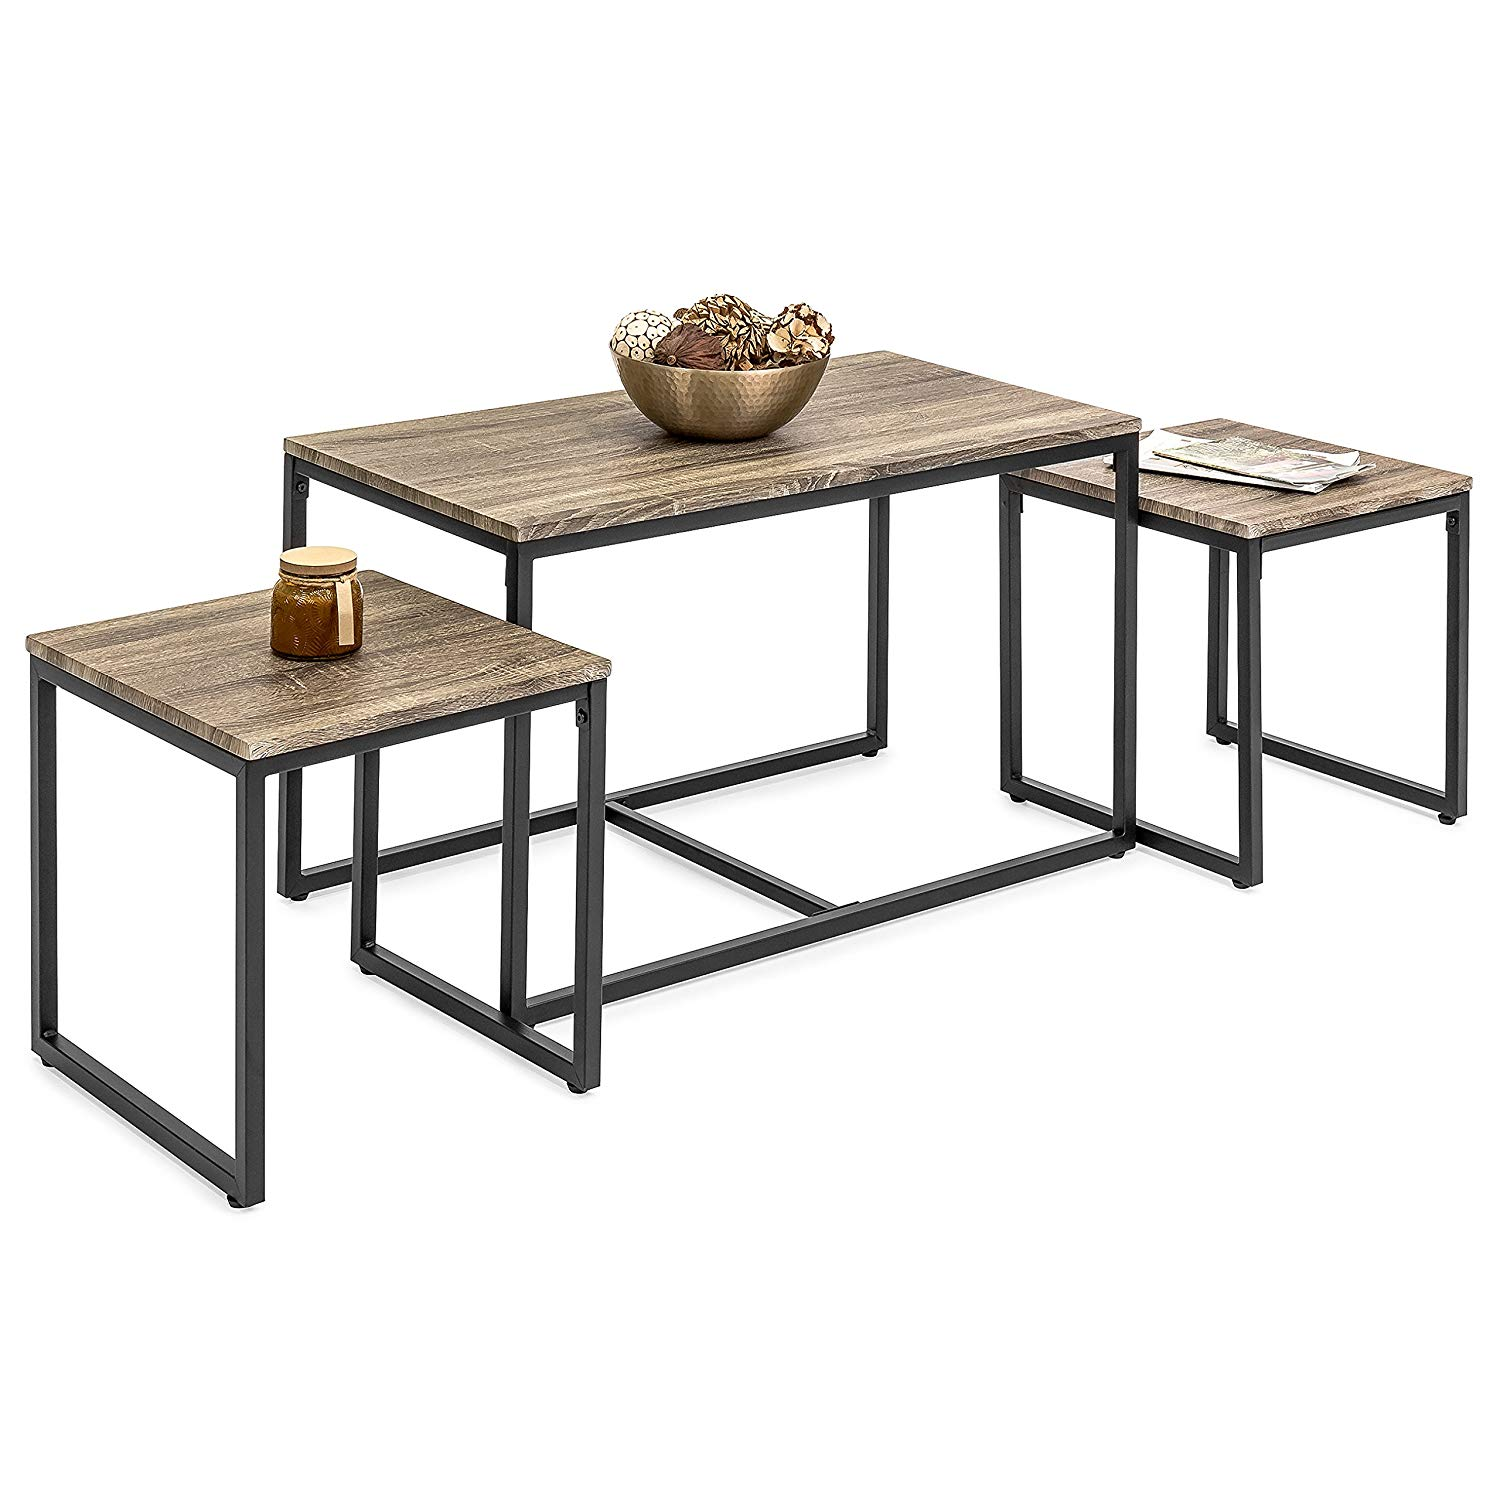 best choice products piece modern lightweight nesting dining room accent table coffee living furniture lounge set end tables brown kitchen target rustic farmhouse outdoor drink